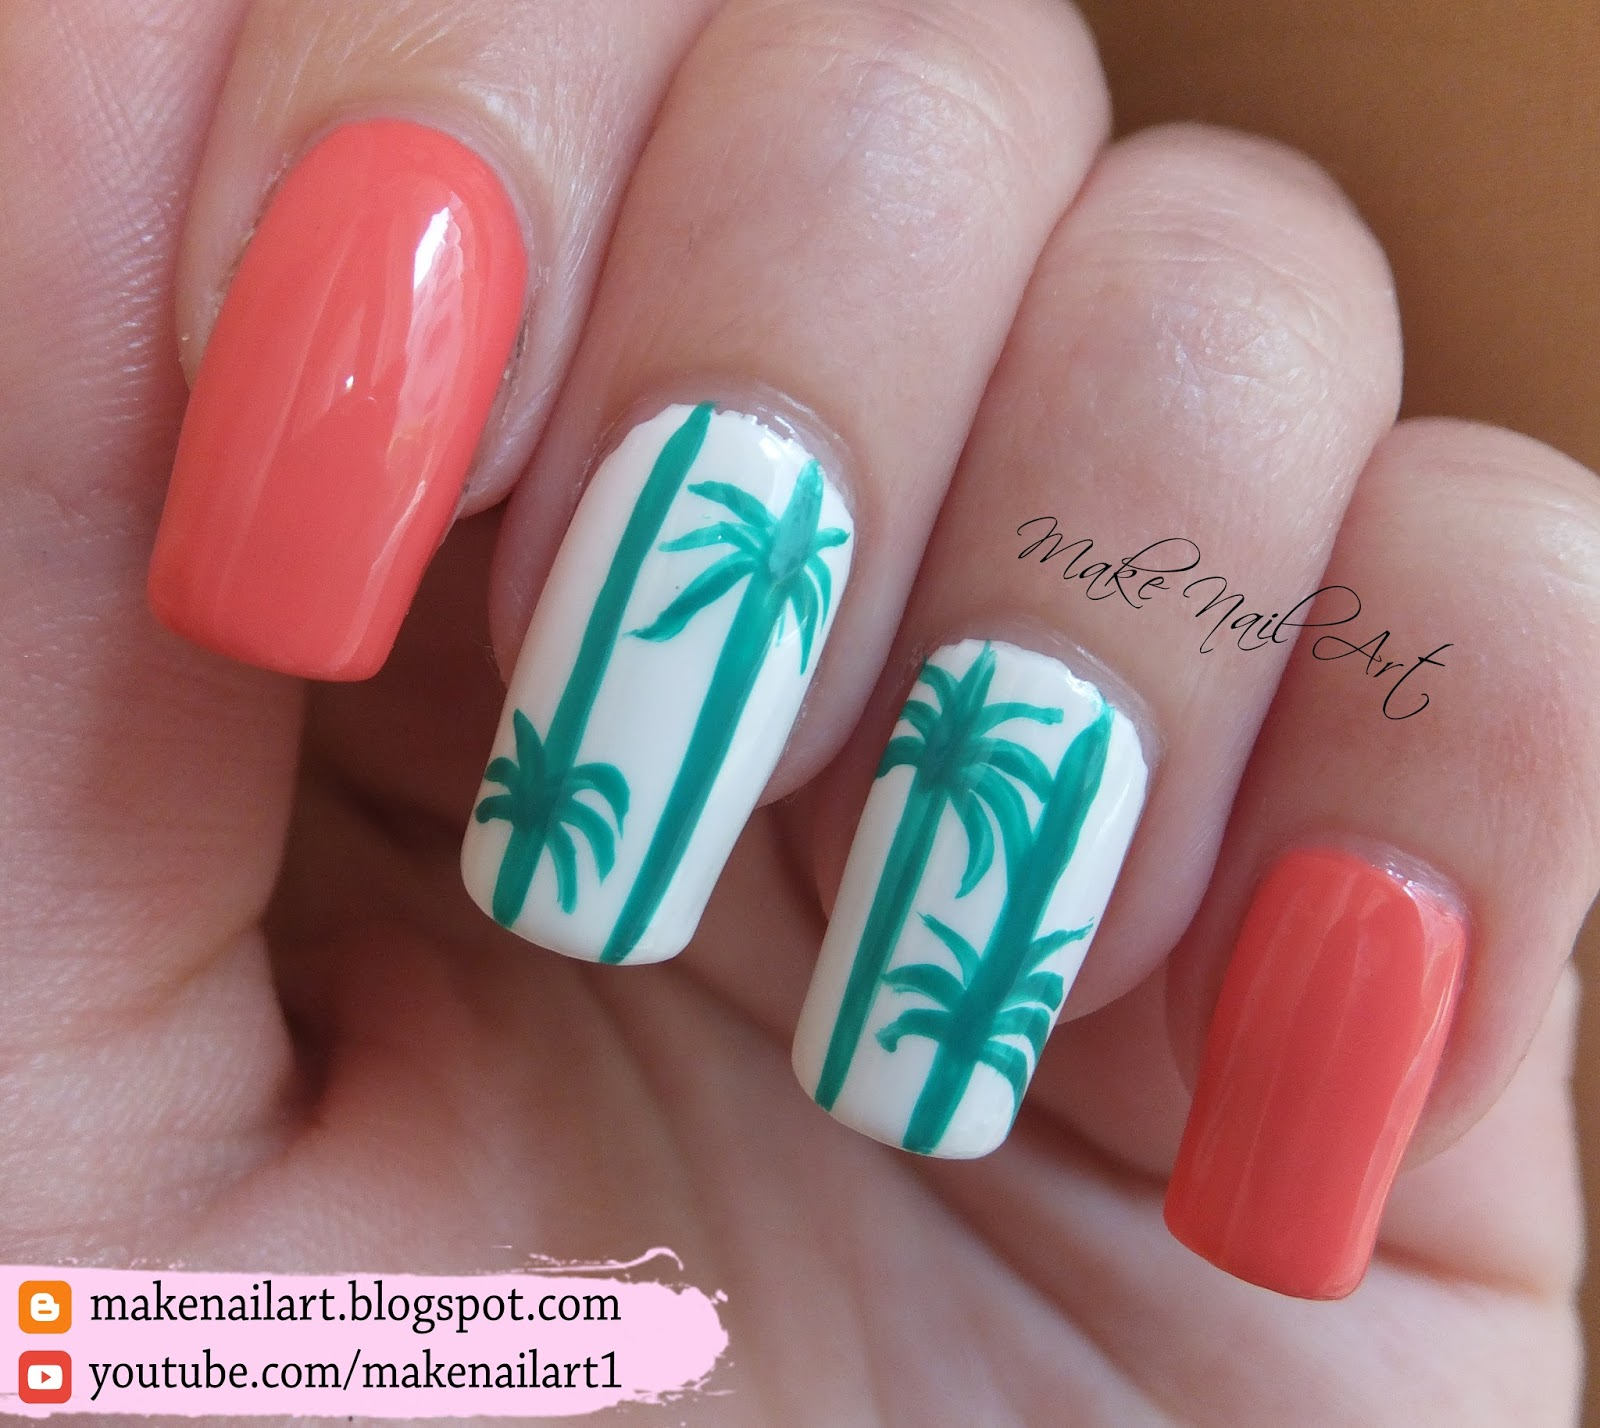 Make Nail Art: Summer Palm Tree Nail Art Design Tutorial